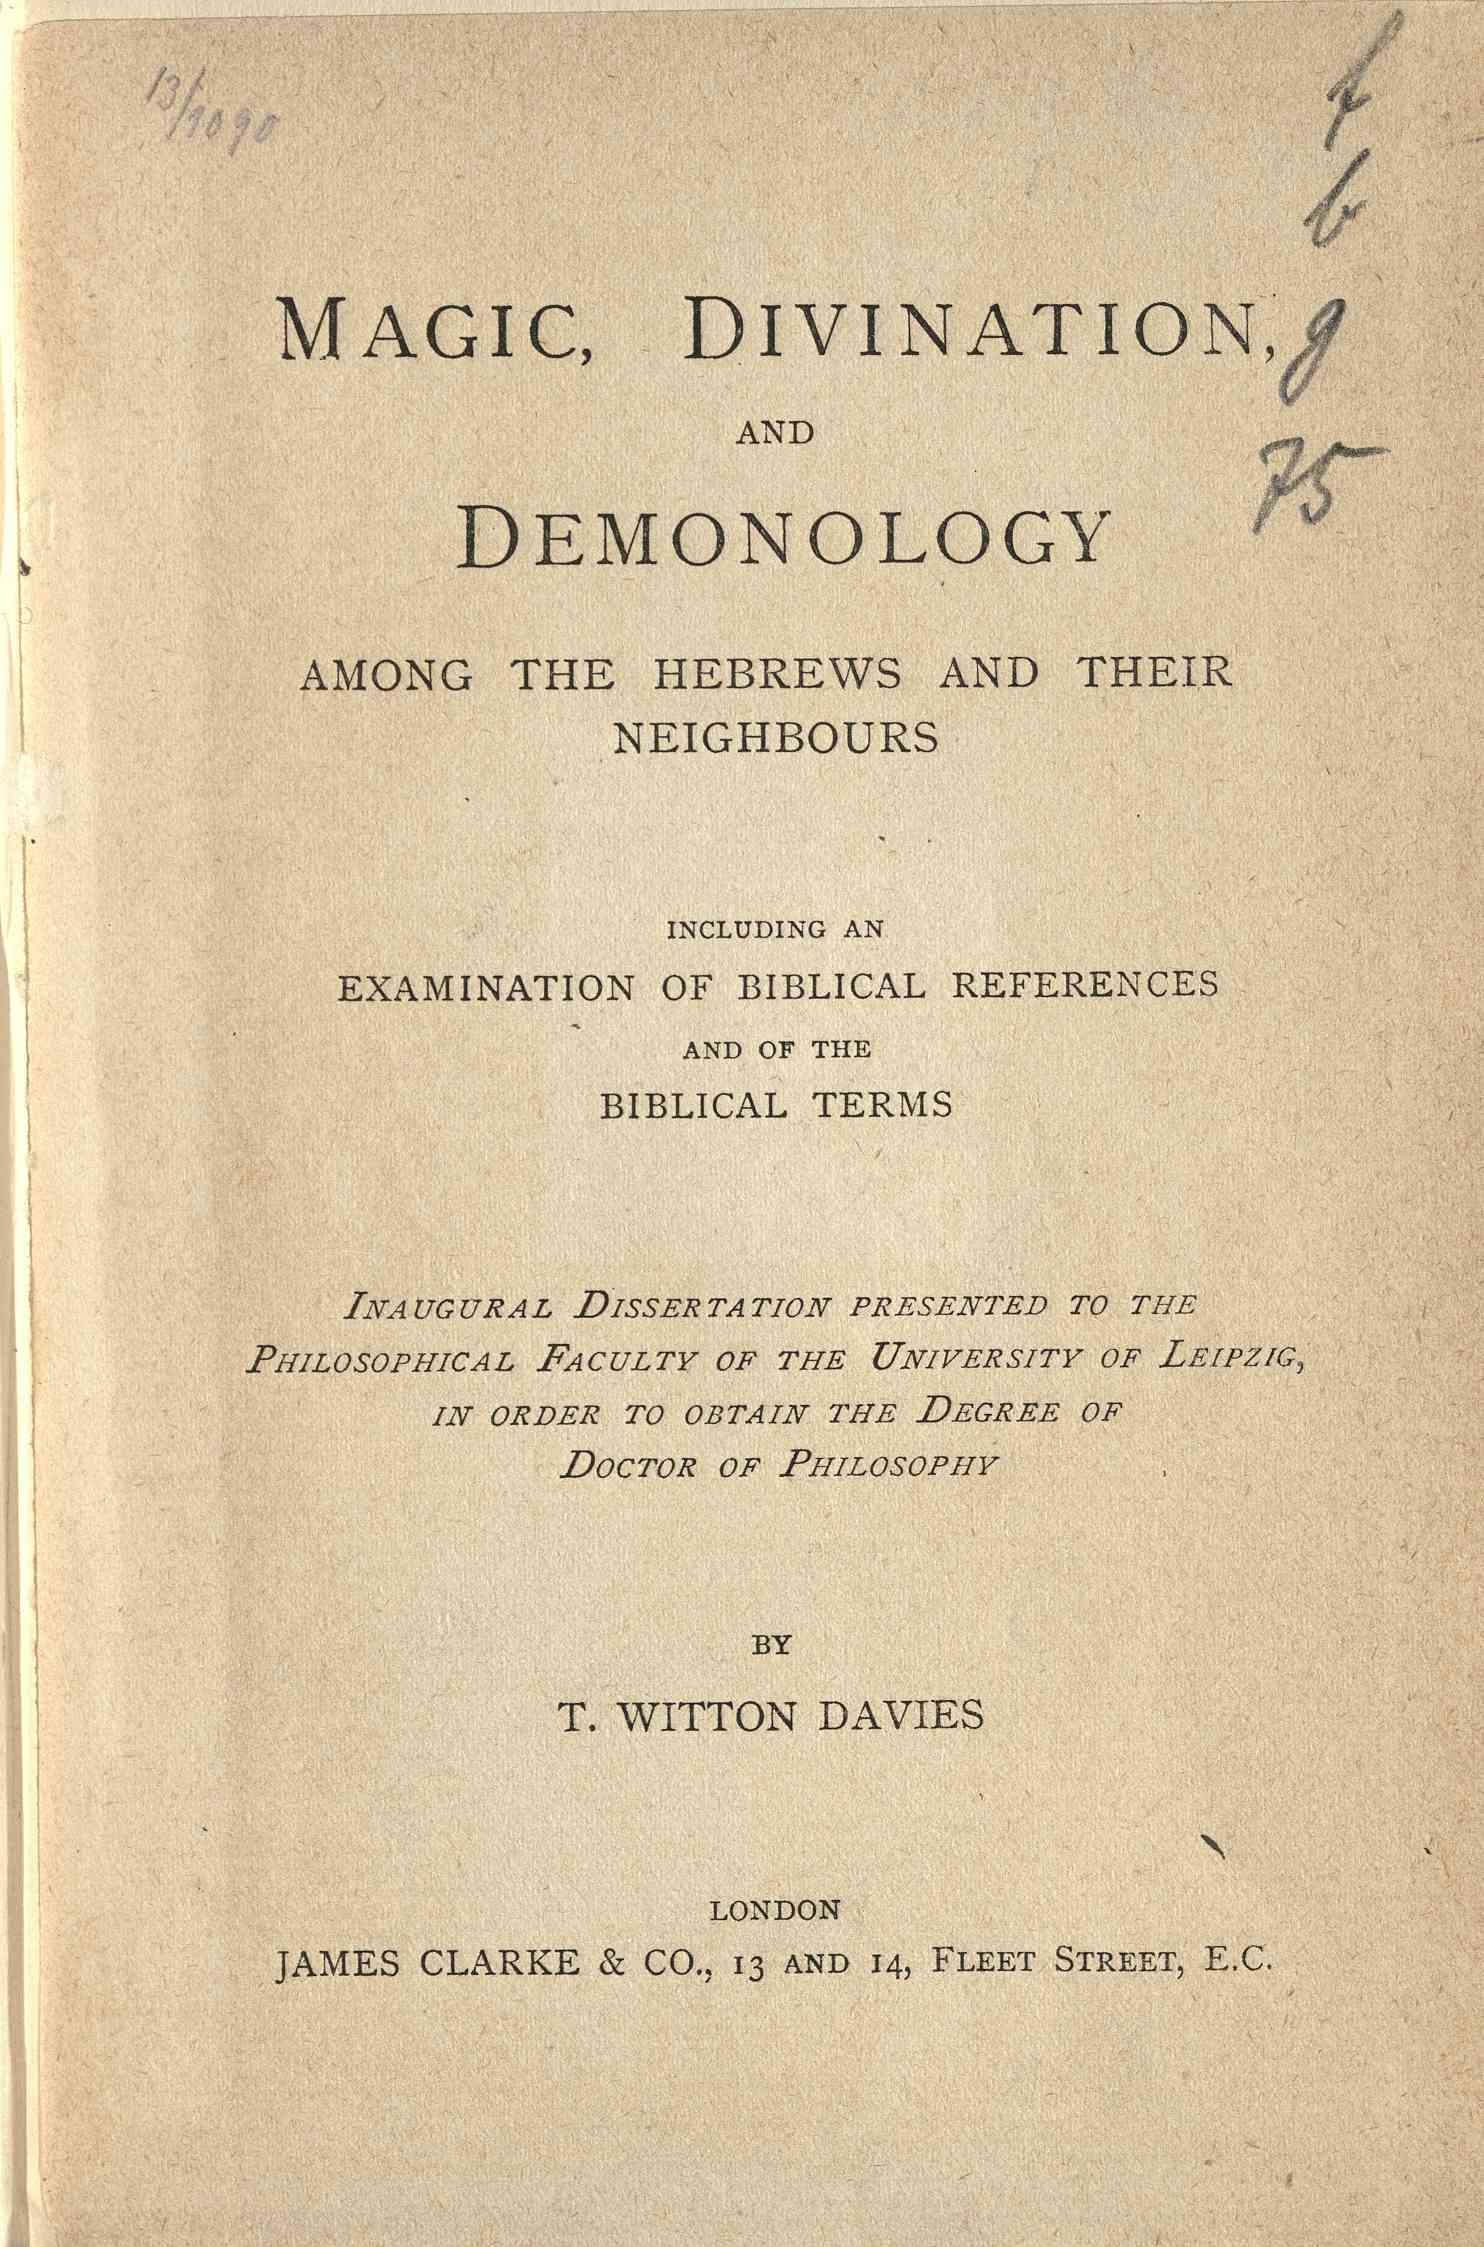 Magic, divination, and demonology among the Hebrews and their neighbours